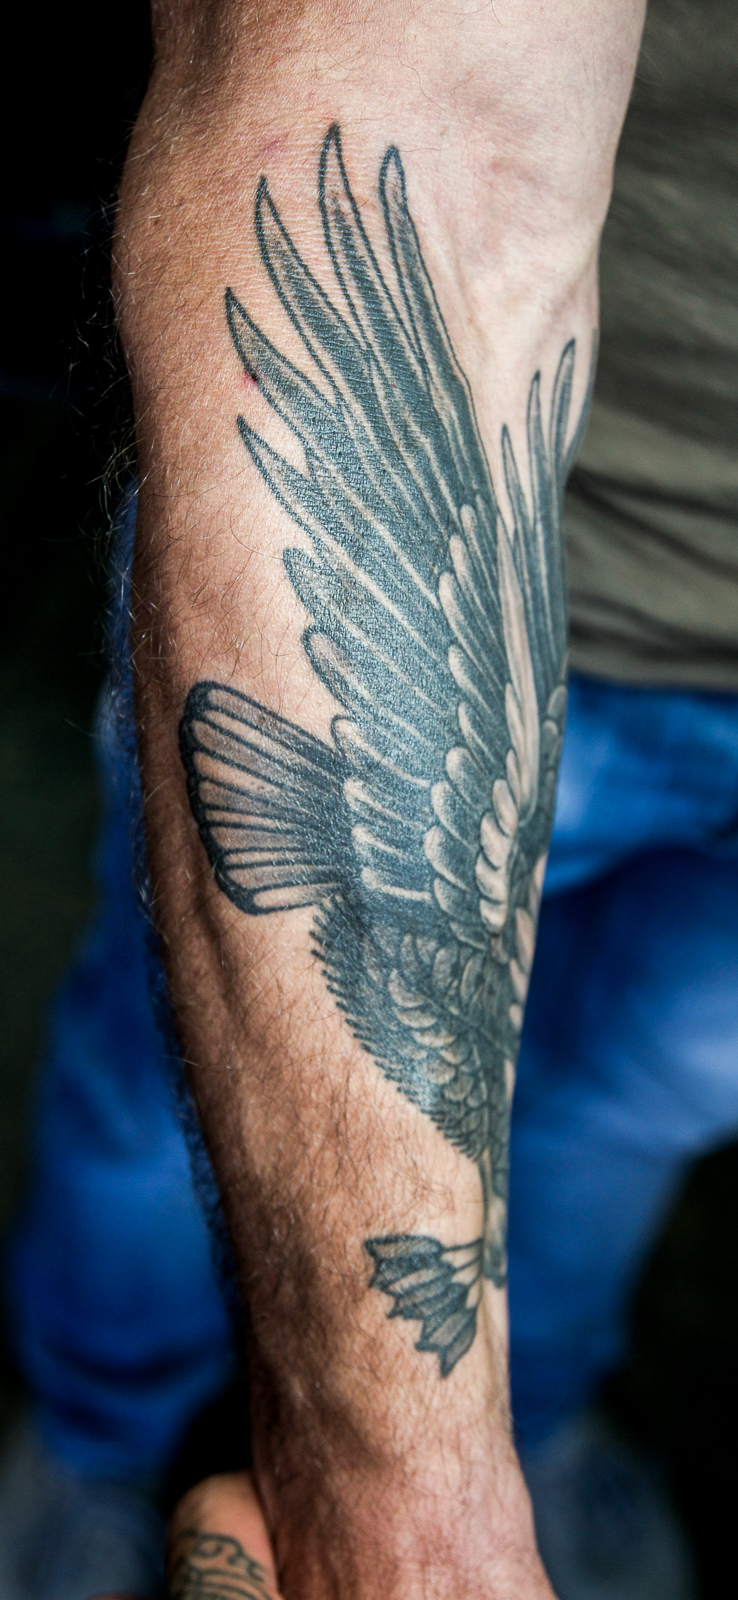 Traditional Eagle 3 enrique bernal ejay tattoo.jpg